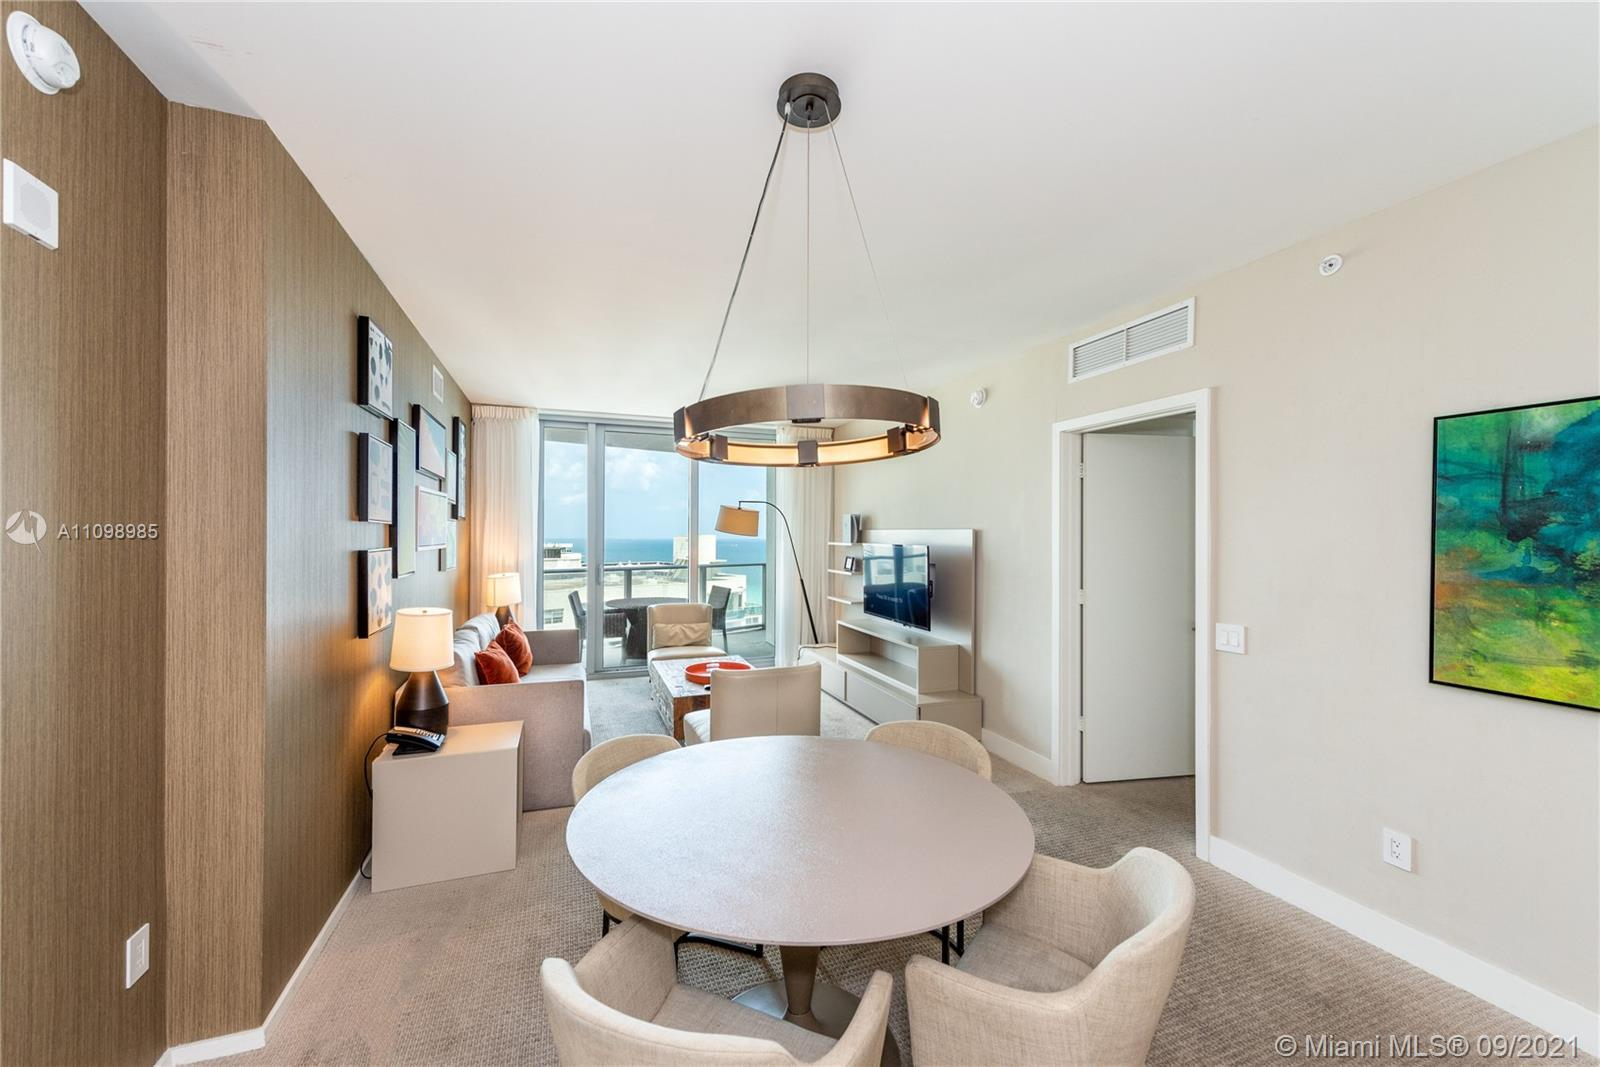 NORTH VIEW!! 2 bedroom, 2 bathrooms fully furnished CONDO HOTEL. Great view to the north with some o